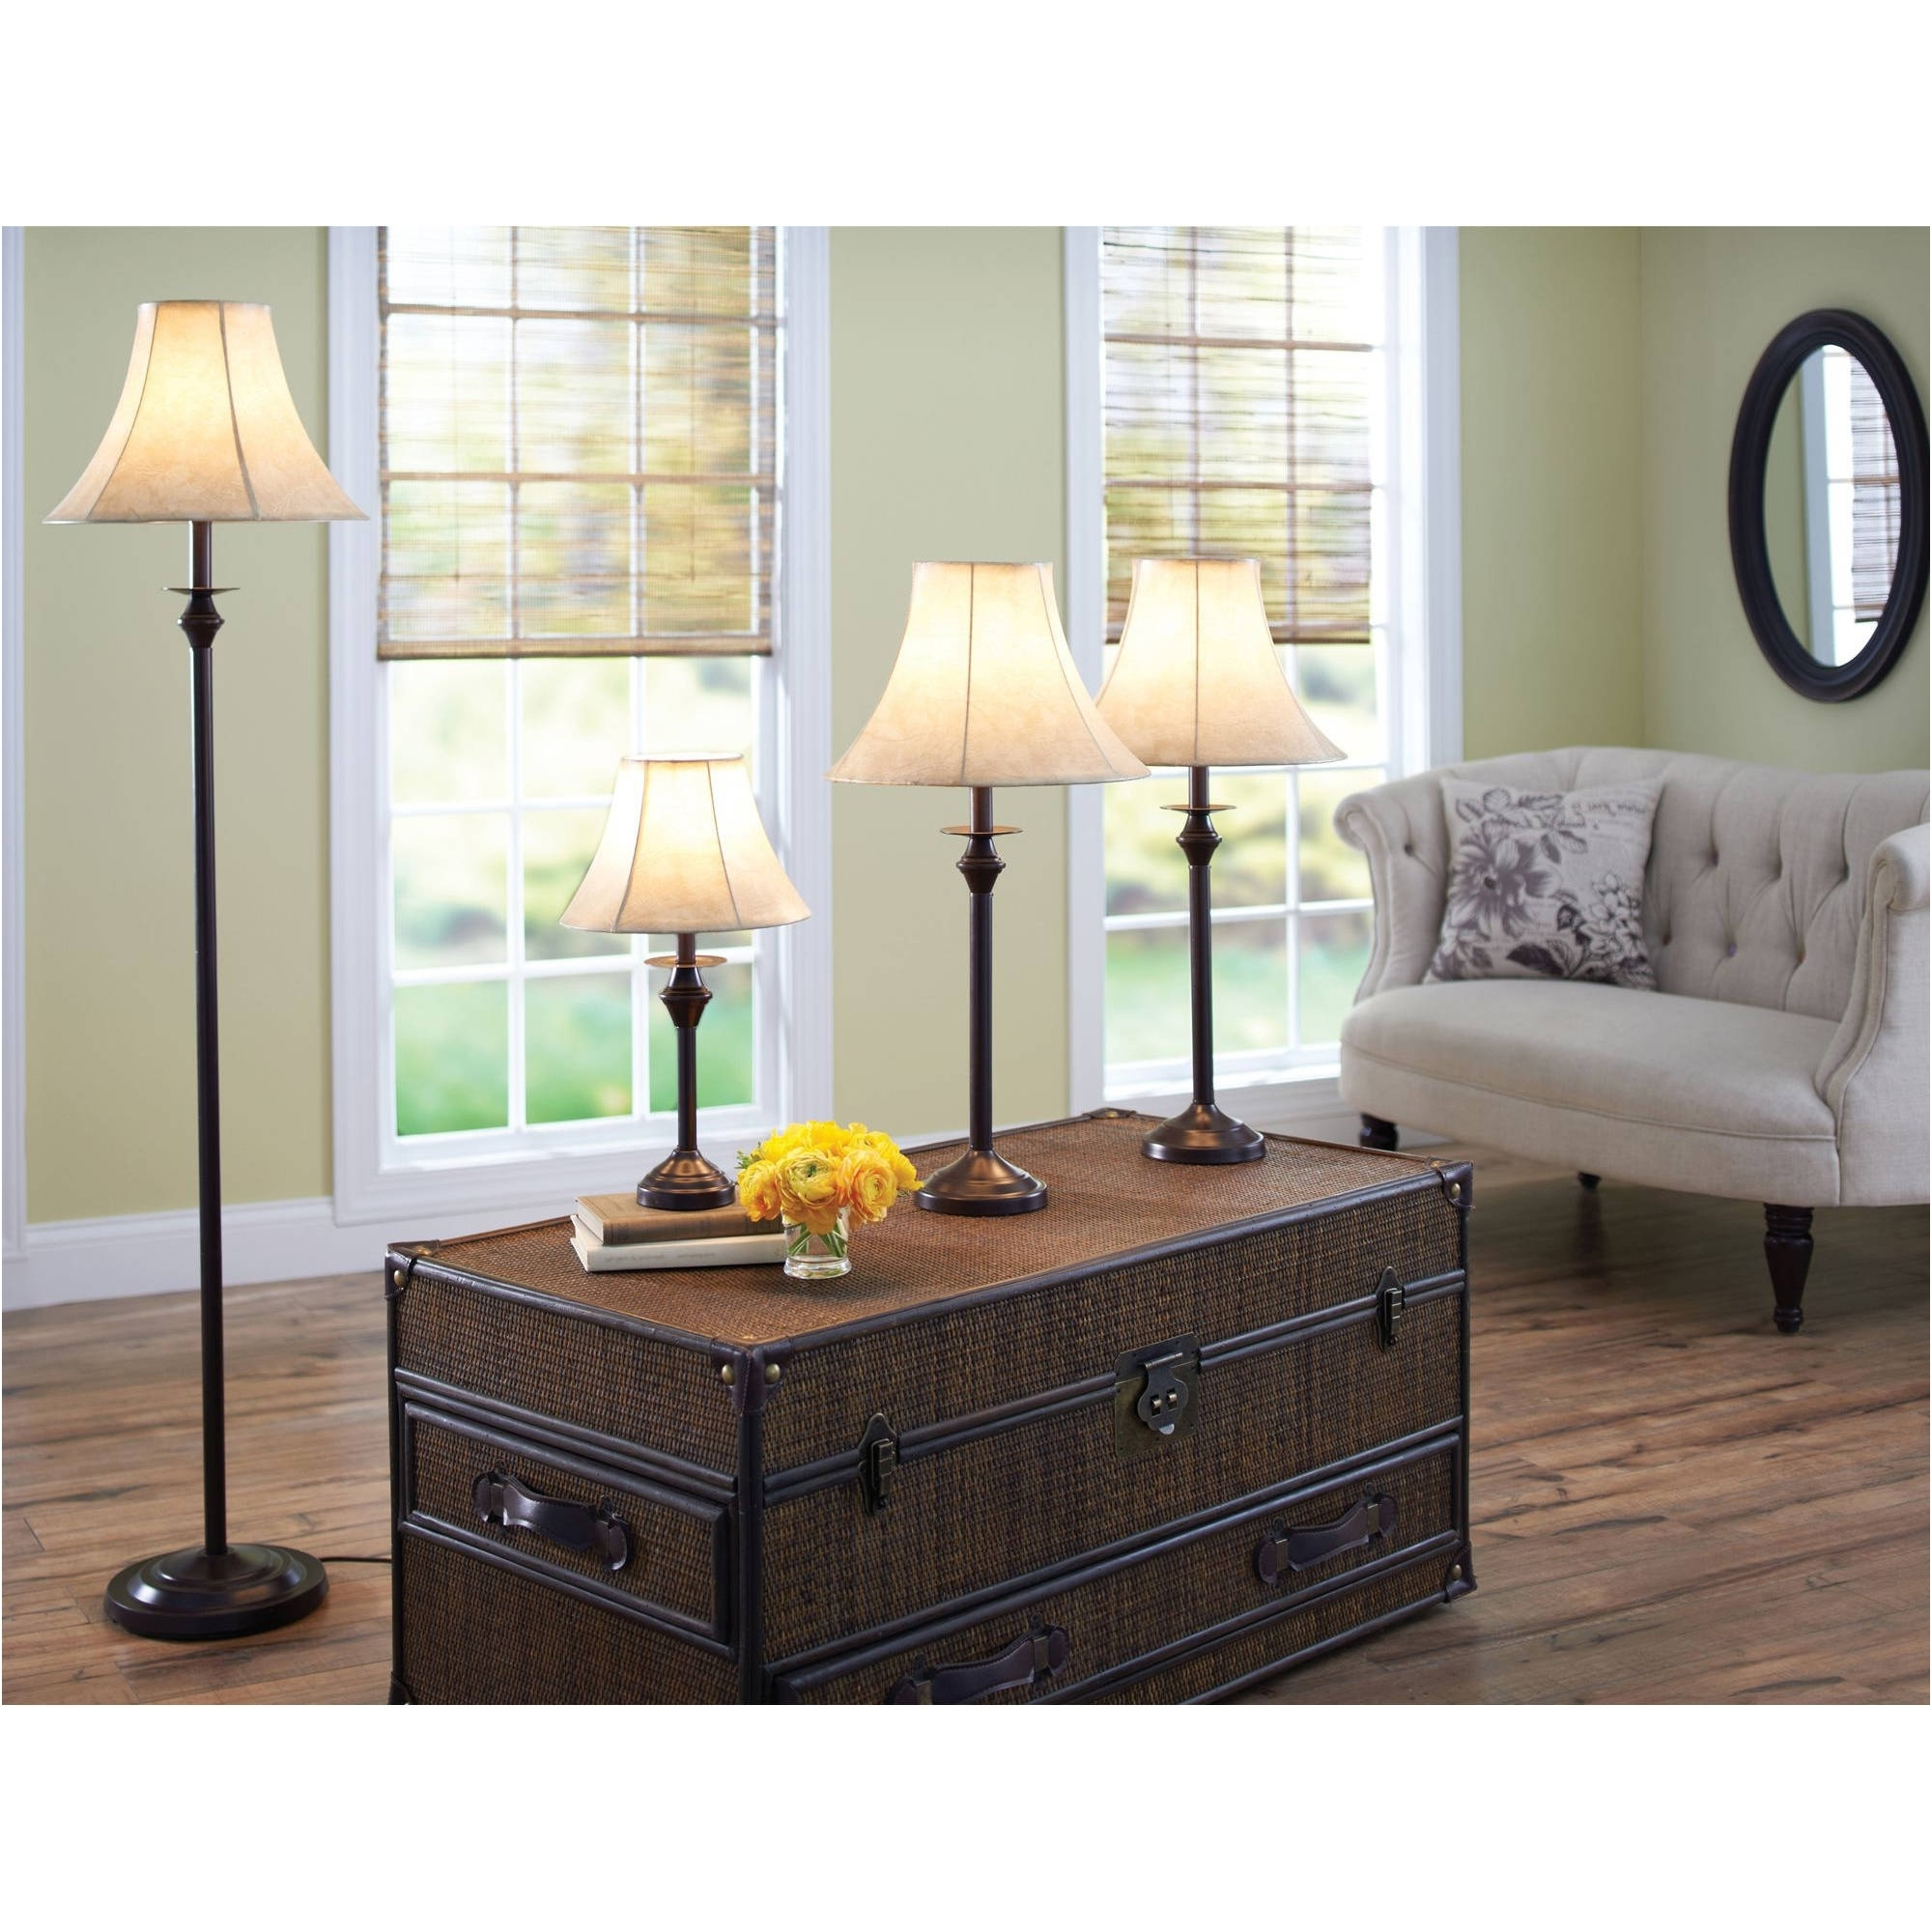 Walmart Living Room Table Lamps Throughout Recent Walmart Desk Fan Design Ideas On Perfect The Best 100 Bronze Table (View 15 of 15)